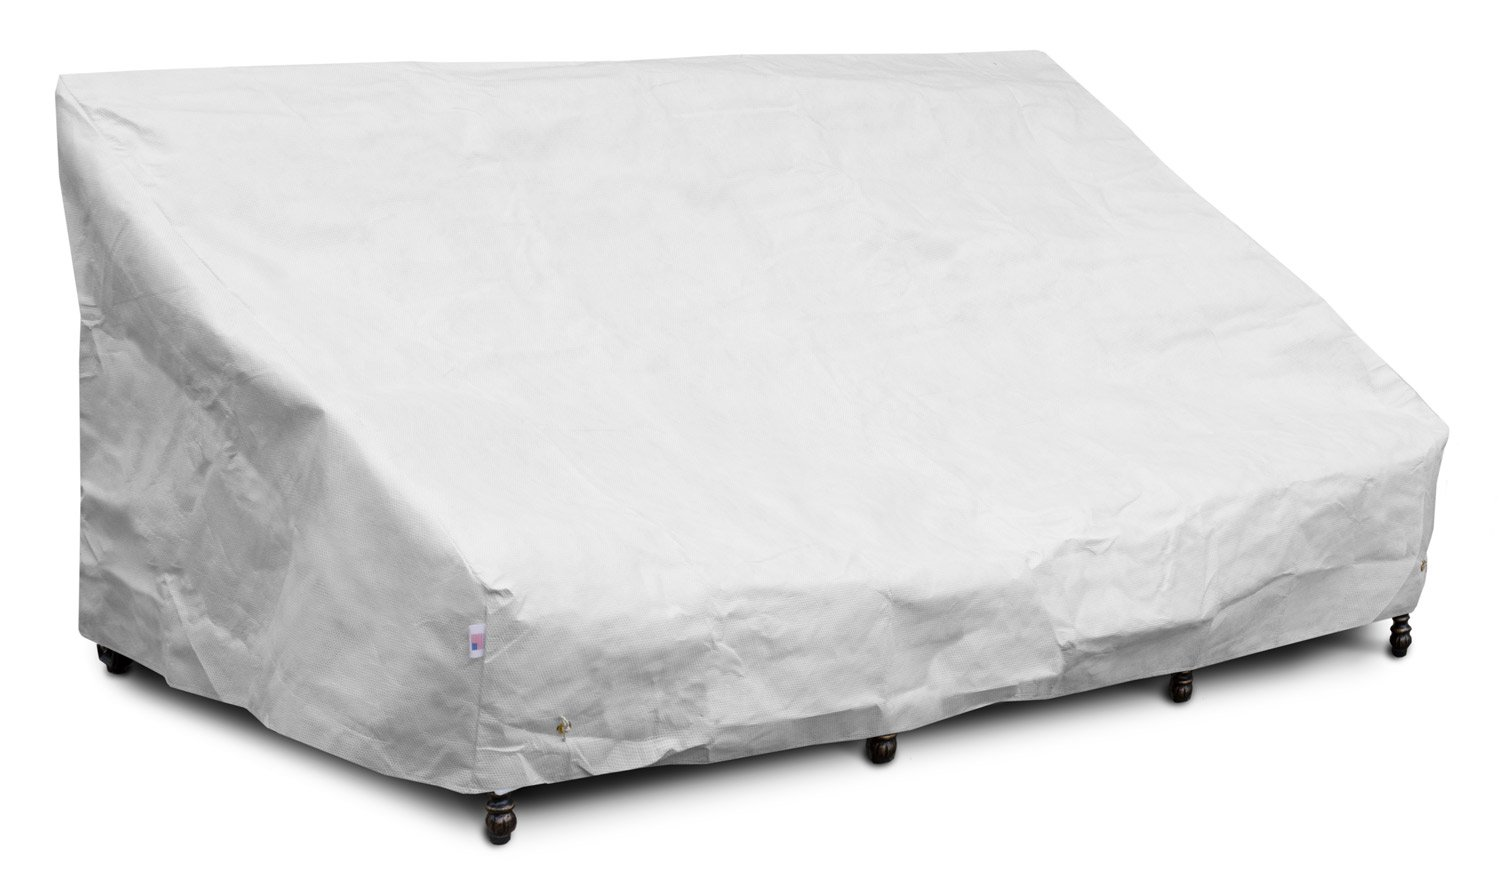 KoverRoos DuPont Tyvek 27450 Sofa Cover, 65-Inch Width by 35-Inch Diameter by 35-Inch Height, White by KOVERROOS